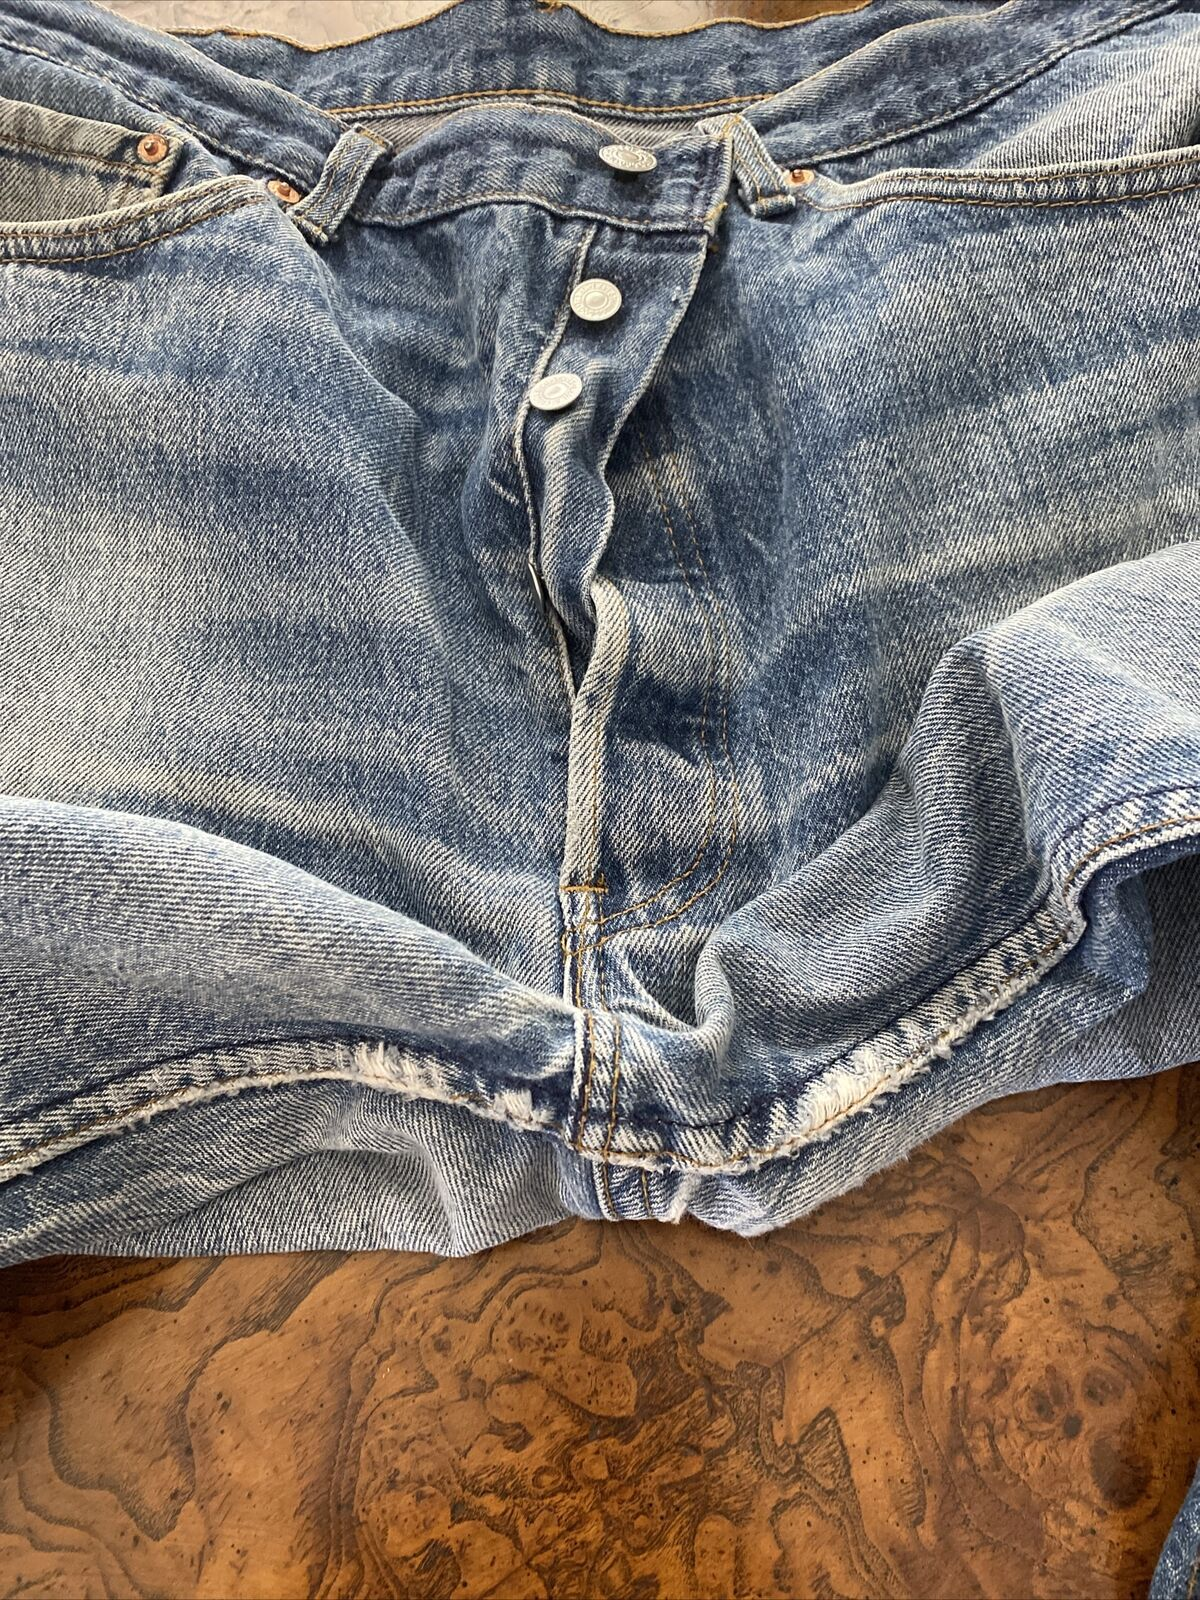 vintage levis jeans 501 made in usa  - image 7